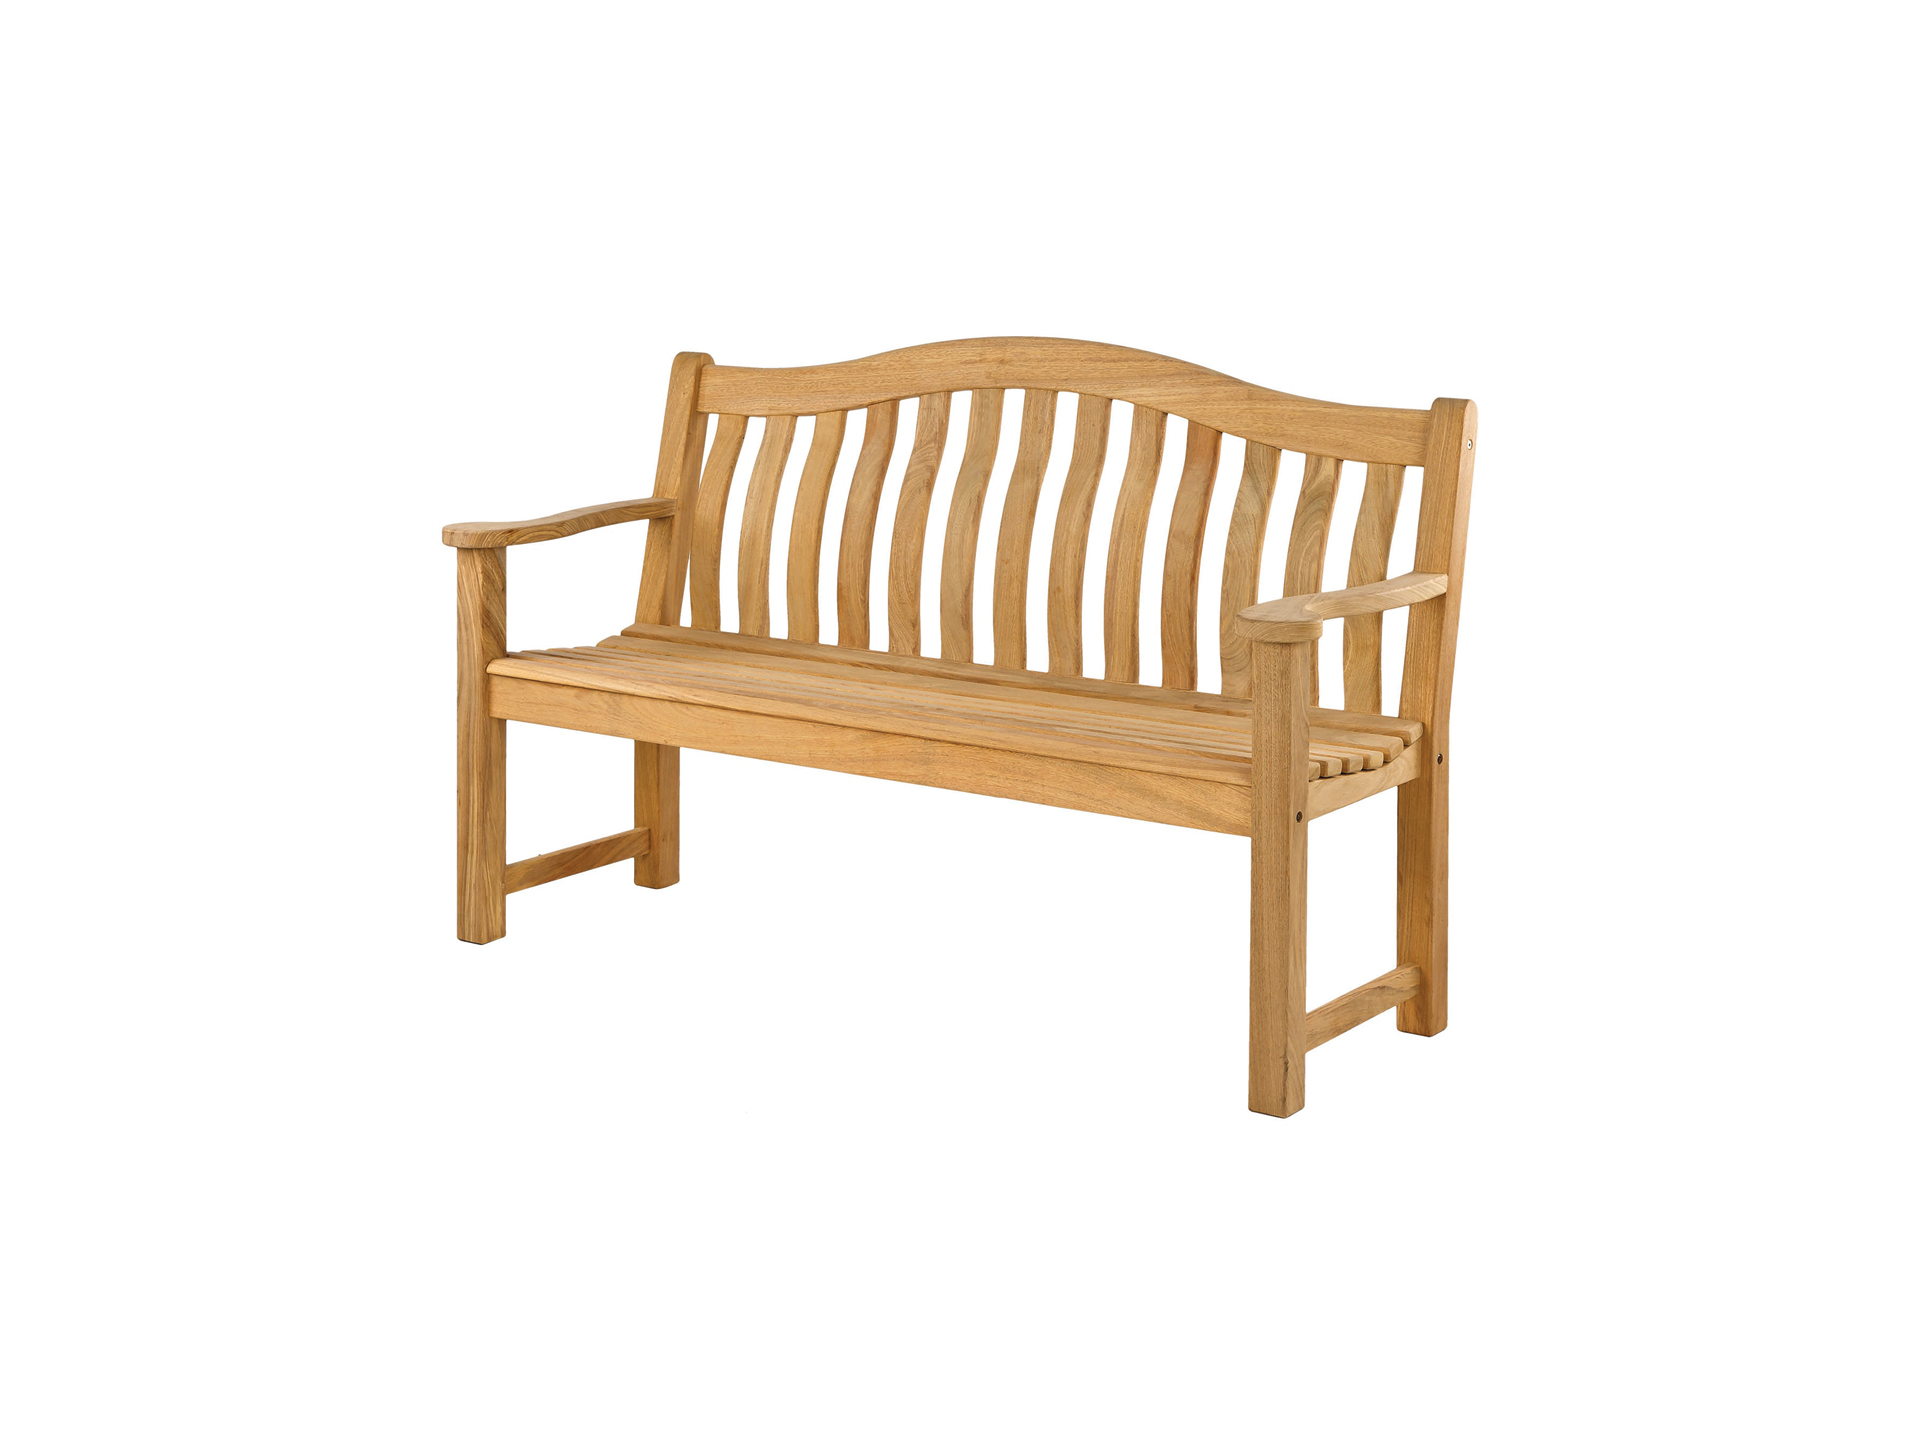 Fabulous Jensen Leisure Contract Benches Collection Offenbachers Ibusinesslaw Wood Chair Design Ideas Ibusinesslaworg